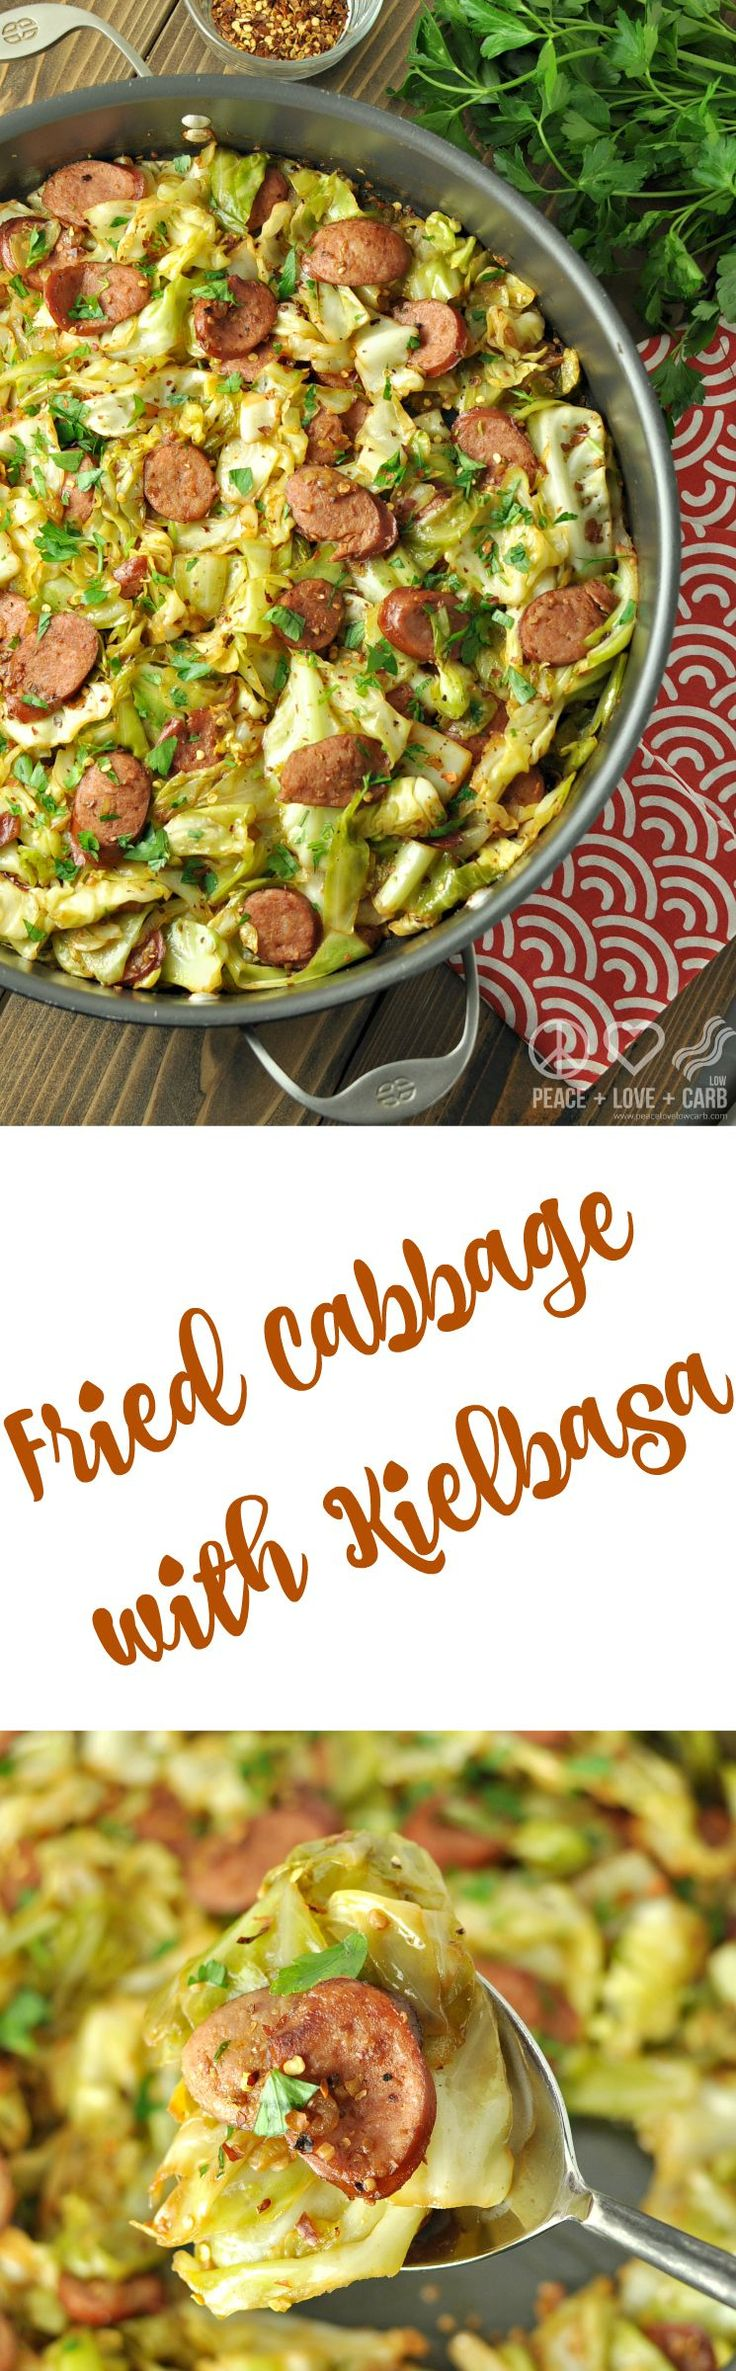 Fried Cabbage with Kielbasa - Low Carb, Gluten Free | Peace Love and Low Carb | peaceloveandlowcarb.com